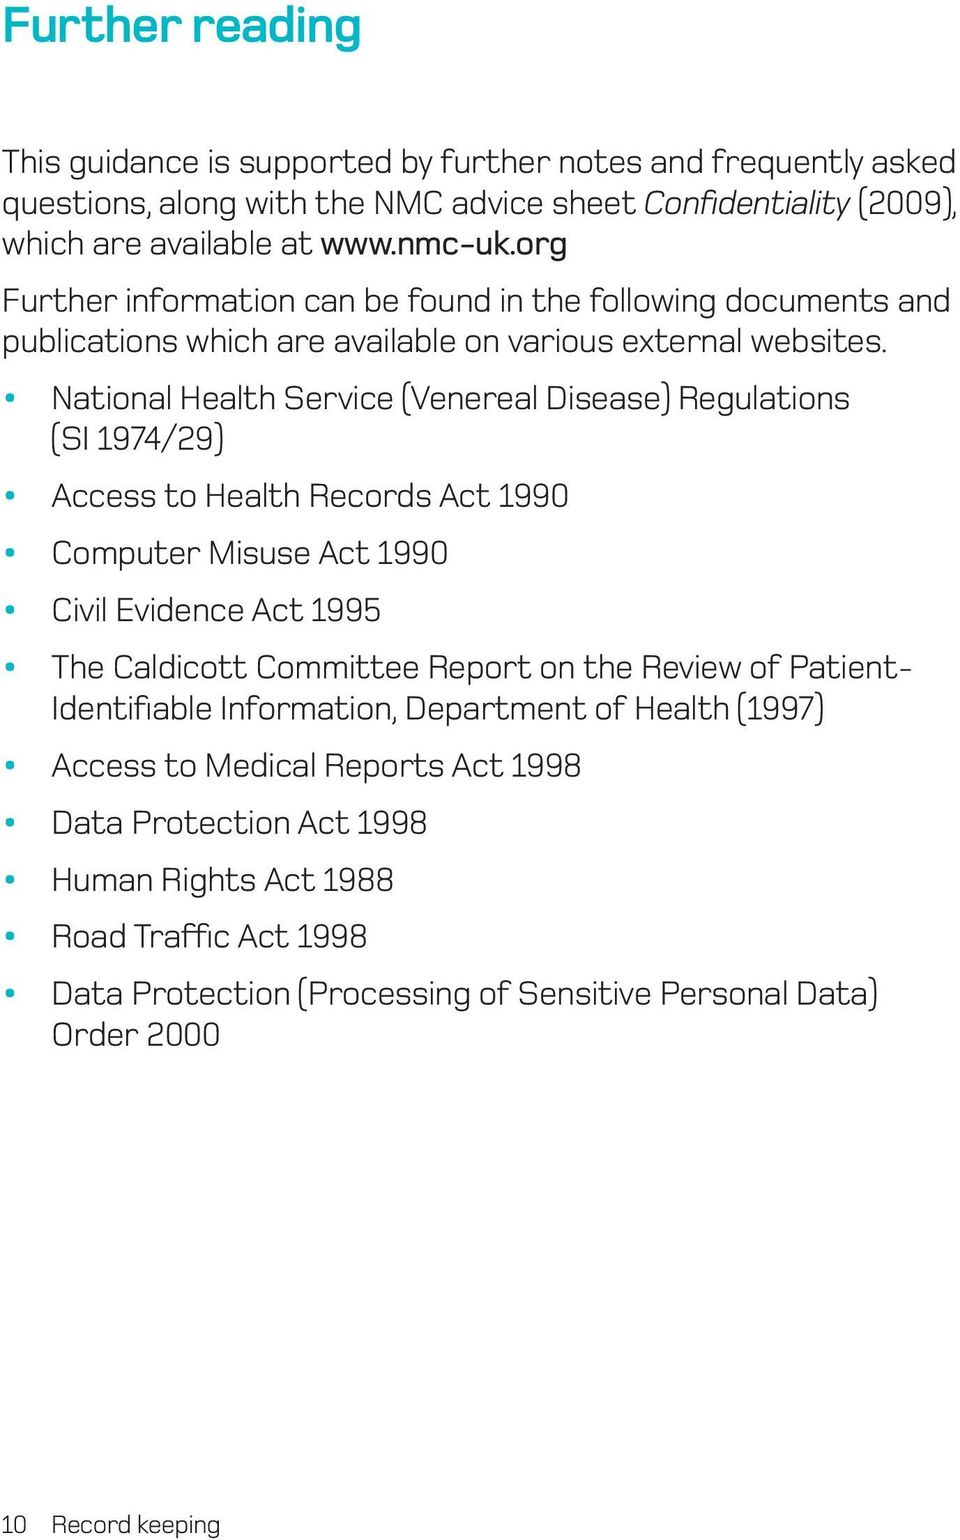 National Health Service (Venereal Disease) Regulations (SI 1974/29) Access to Health Records Act 1990 Computer Misuse Act 1990 Civil Evidence Act 1995 The Caldicott Committee Report on the